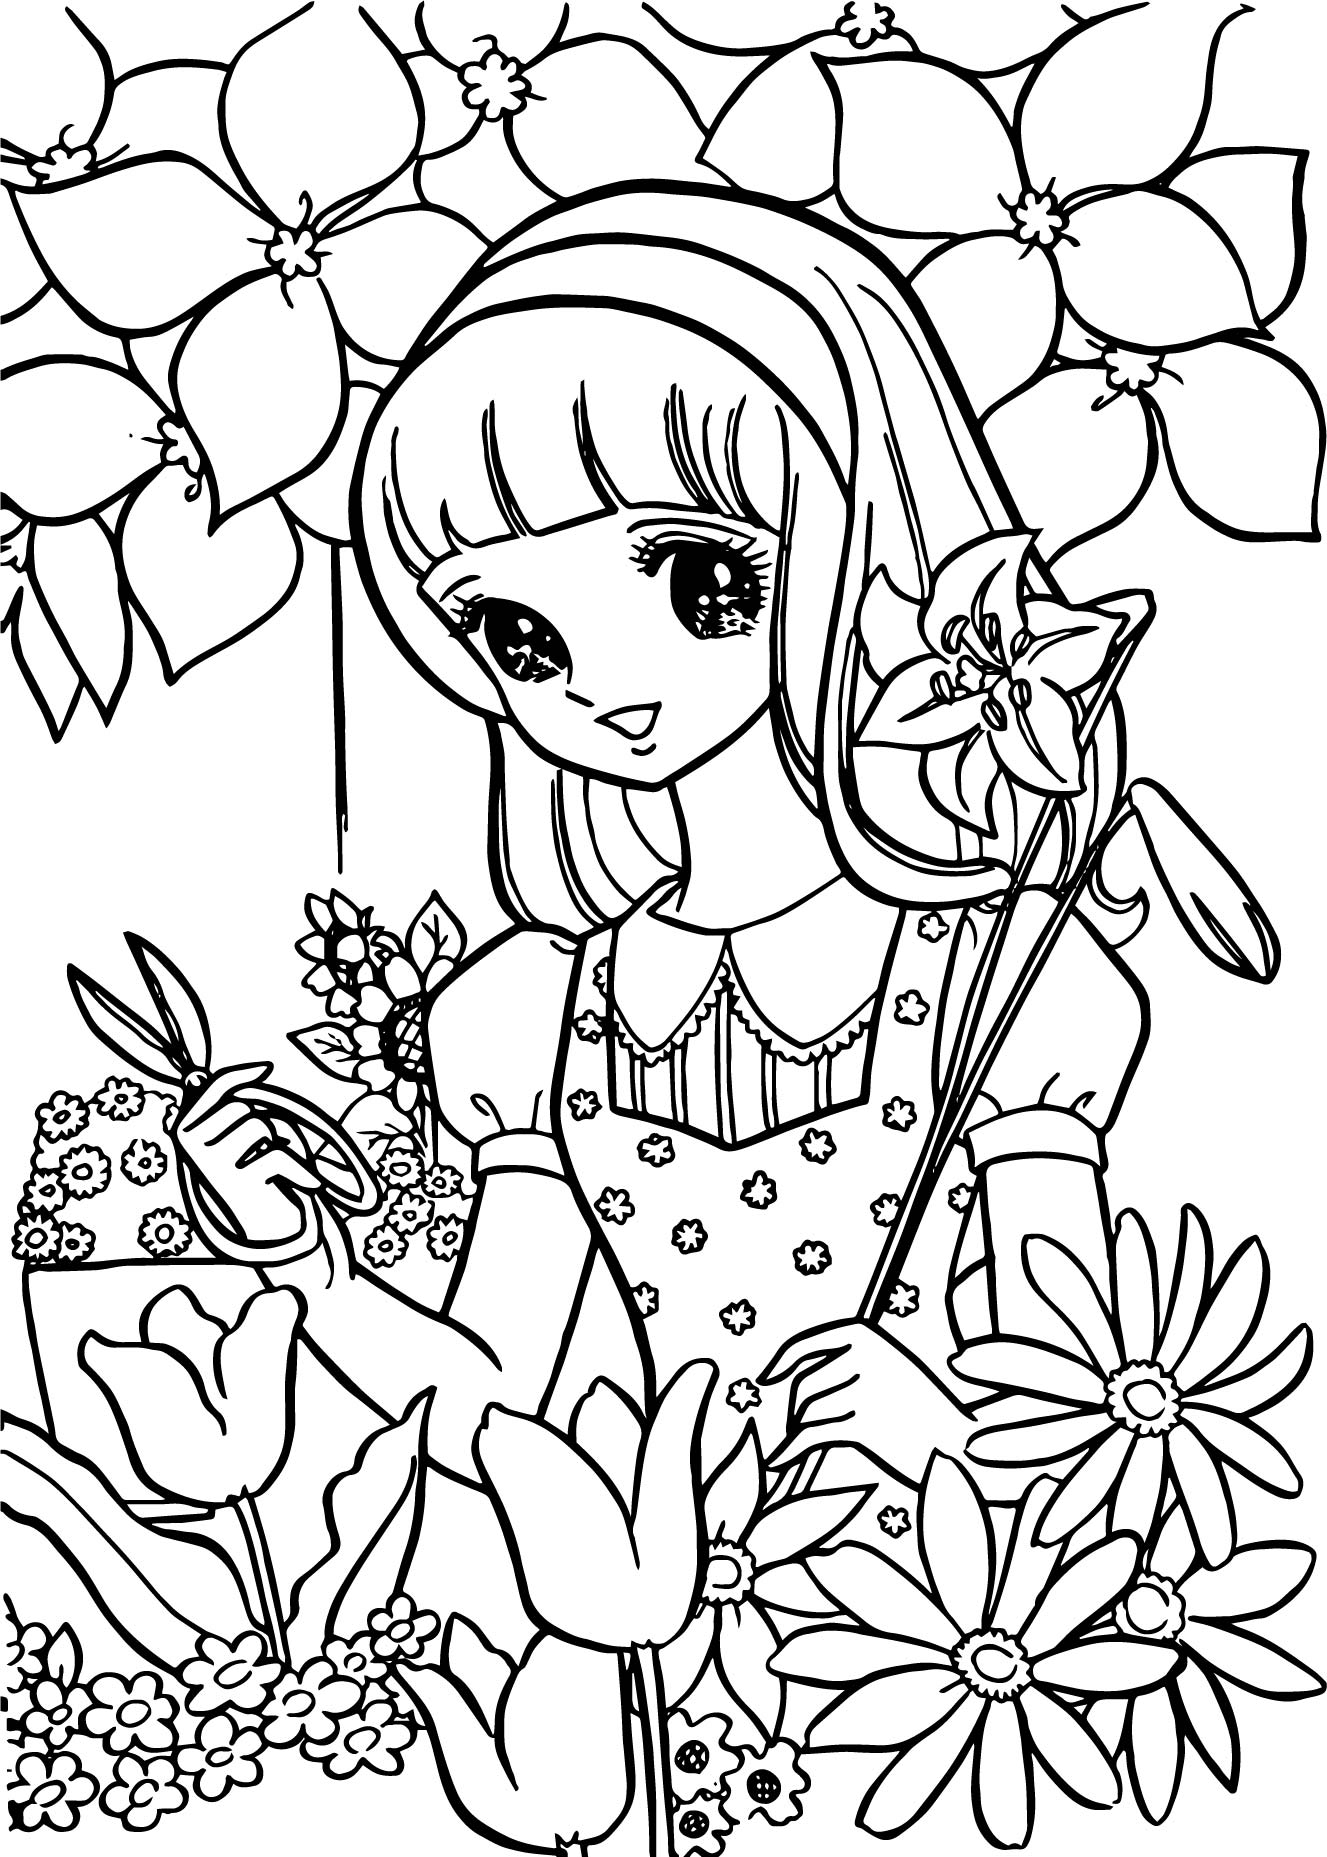 Aeromachia Coloring Pages